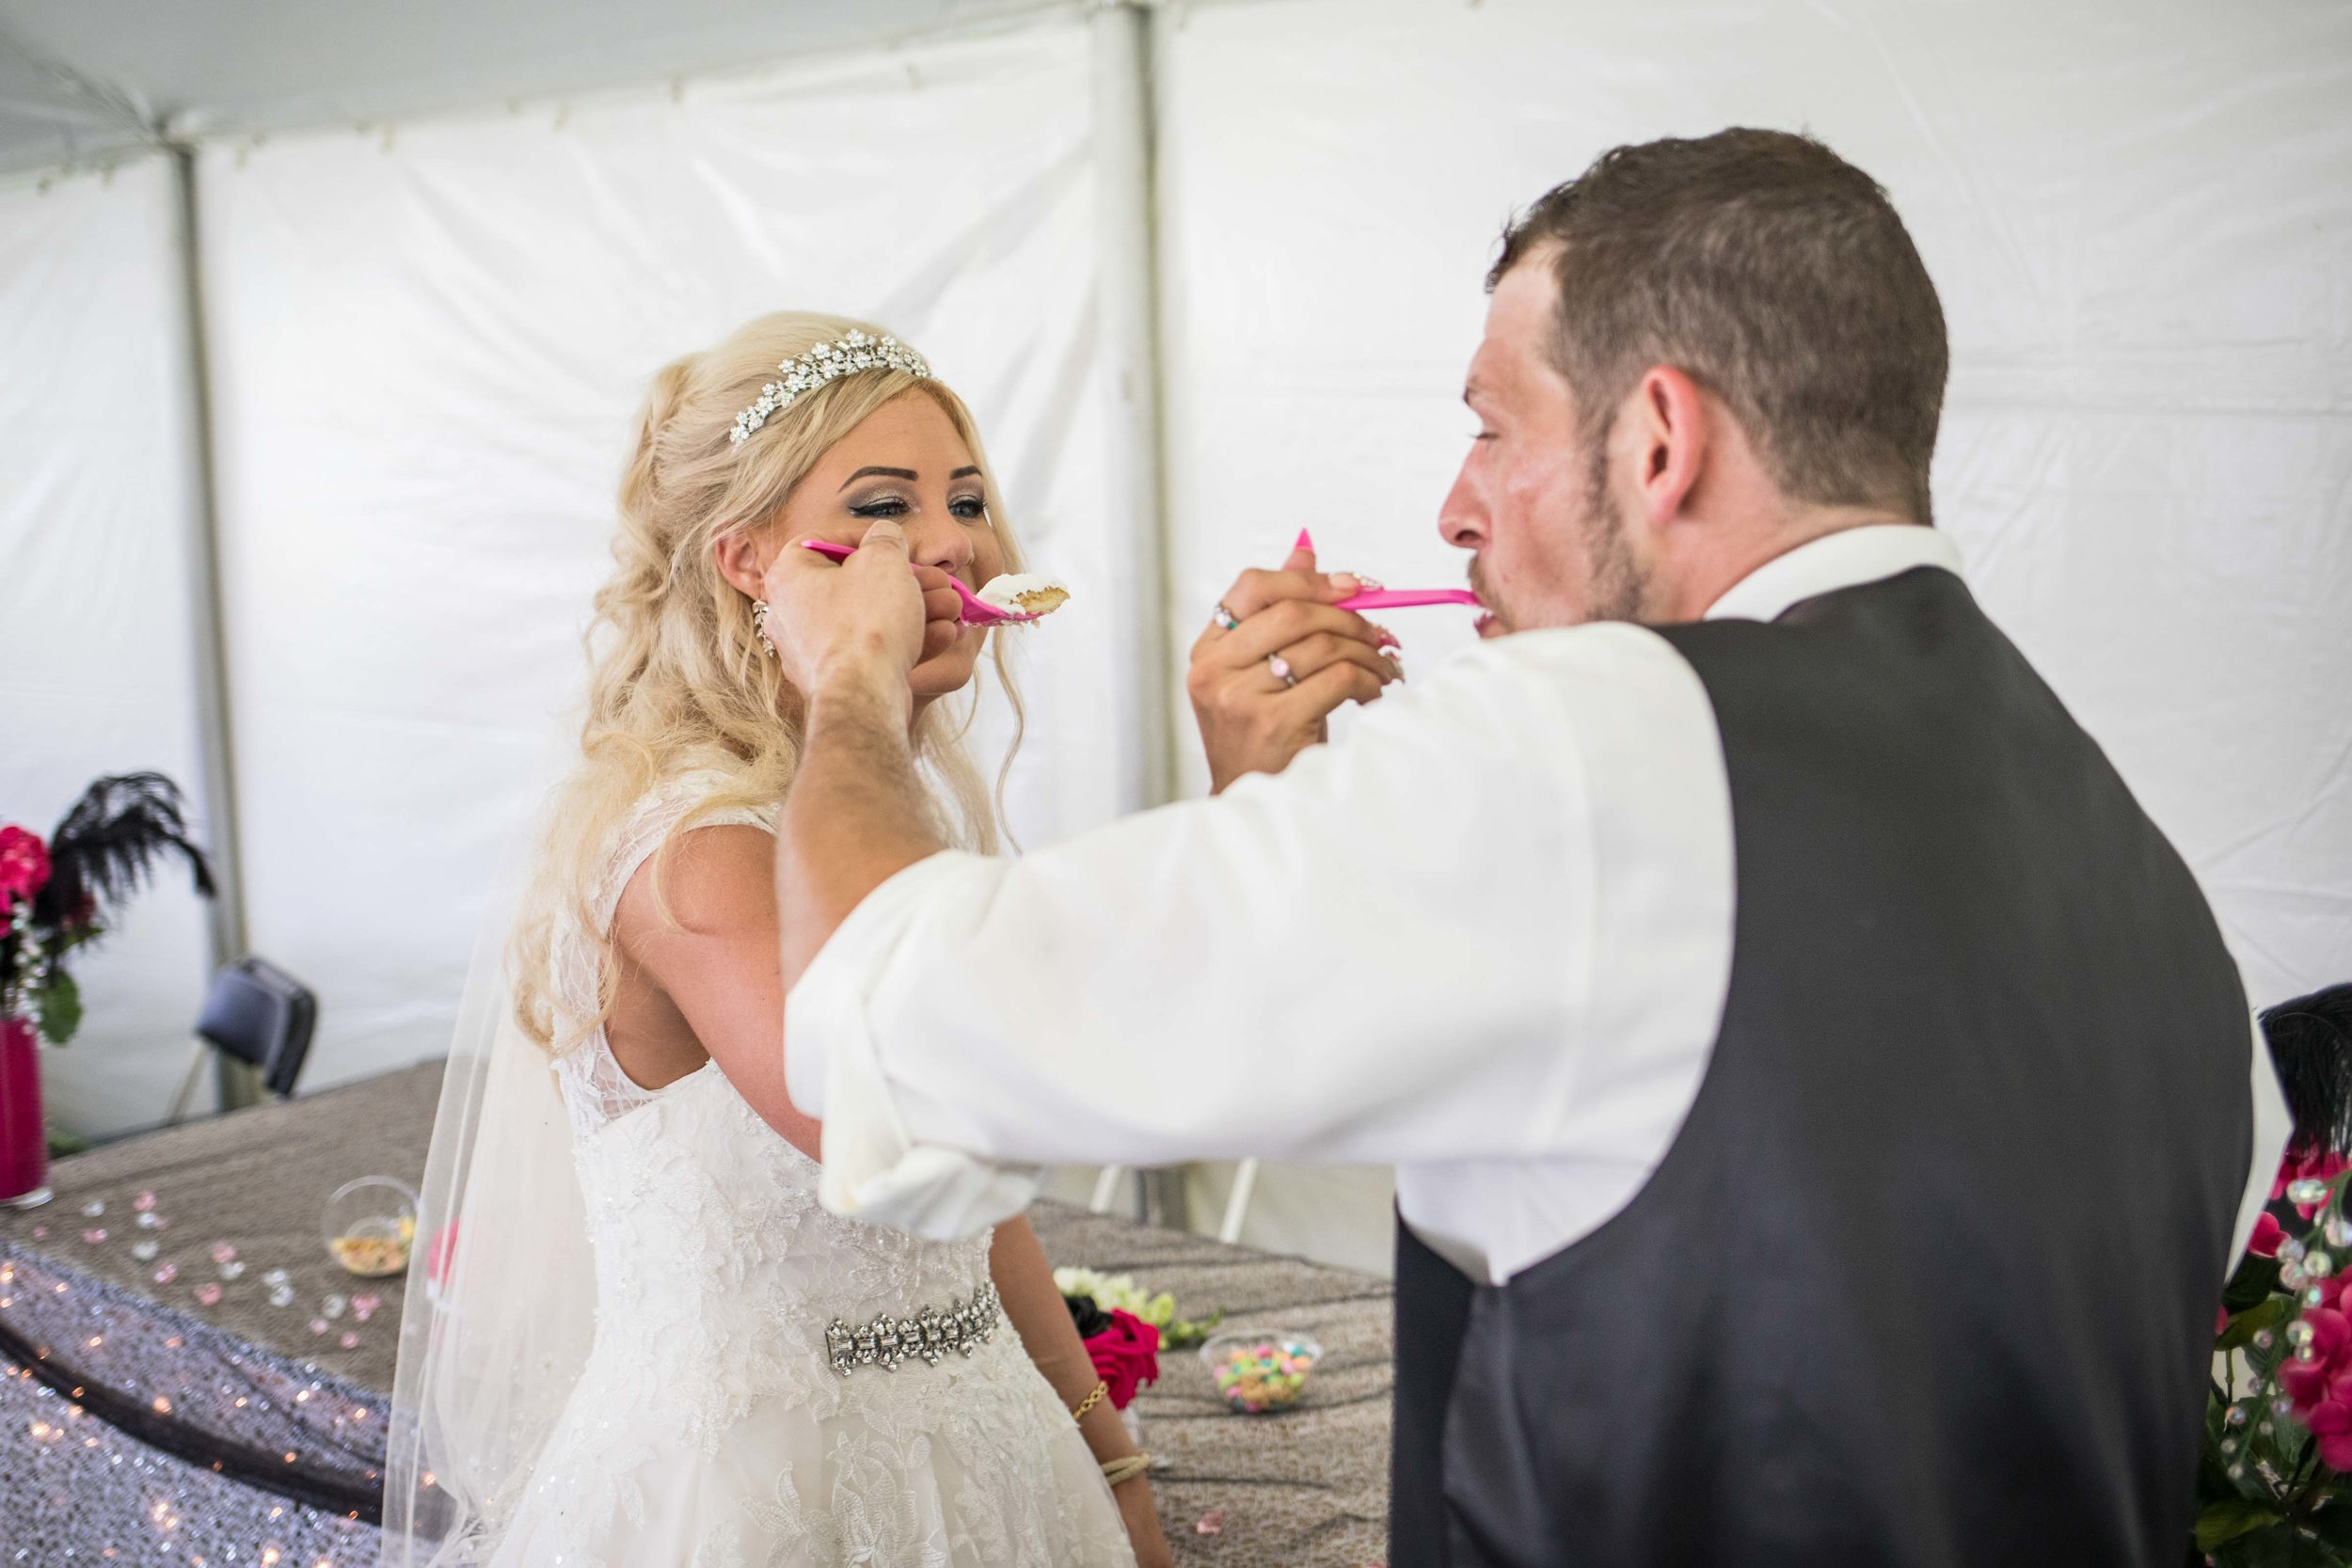 husband and wife feed each other cake